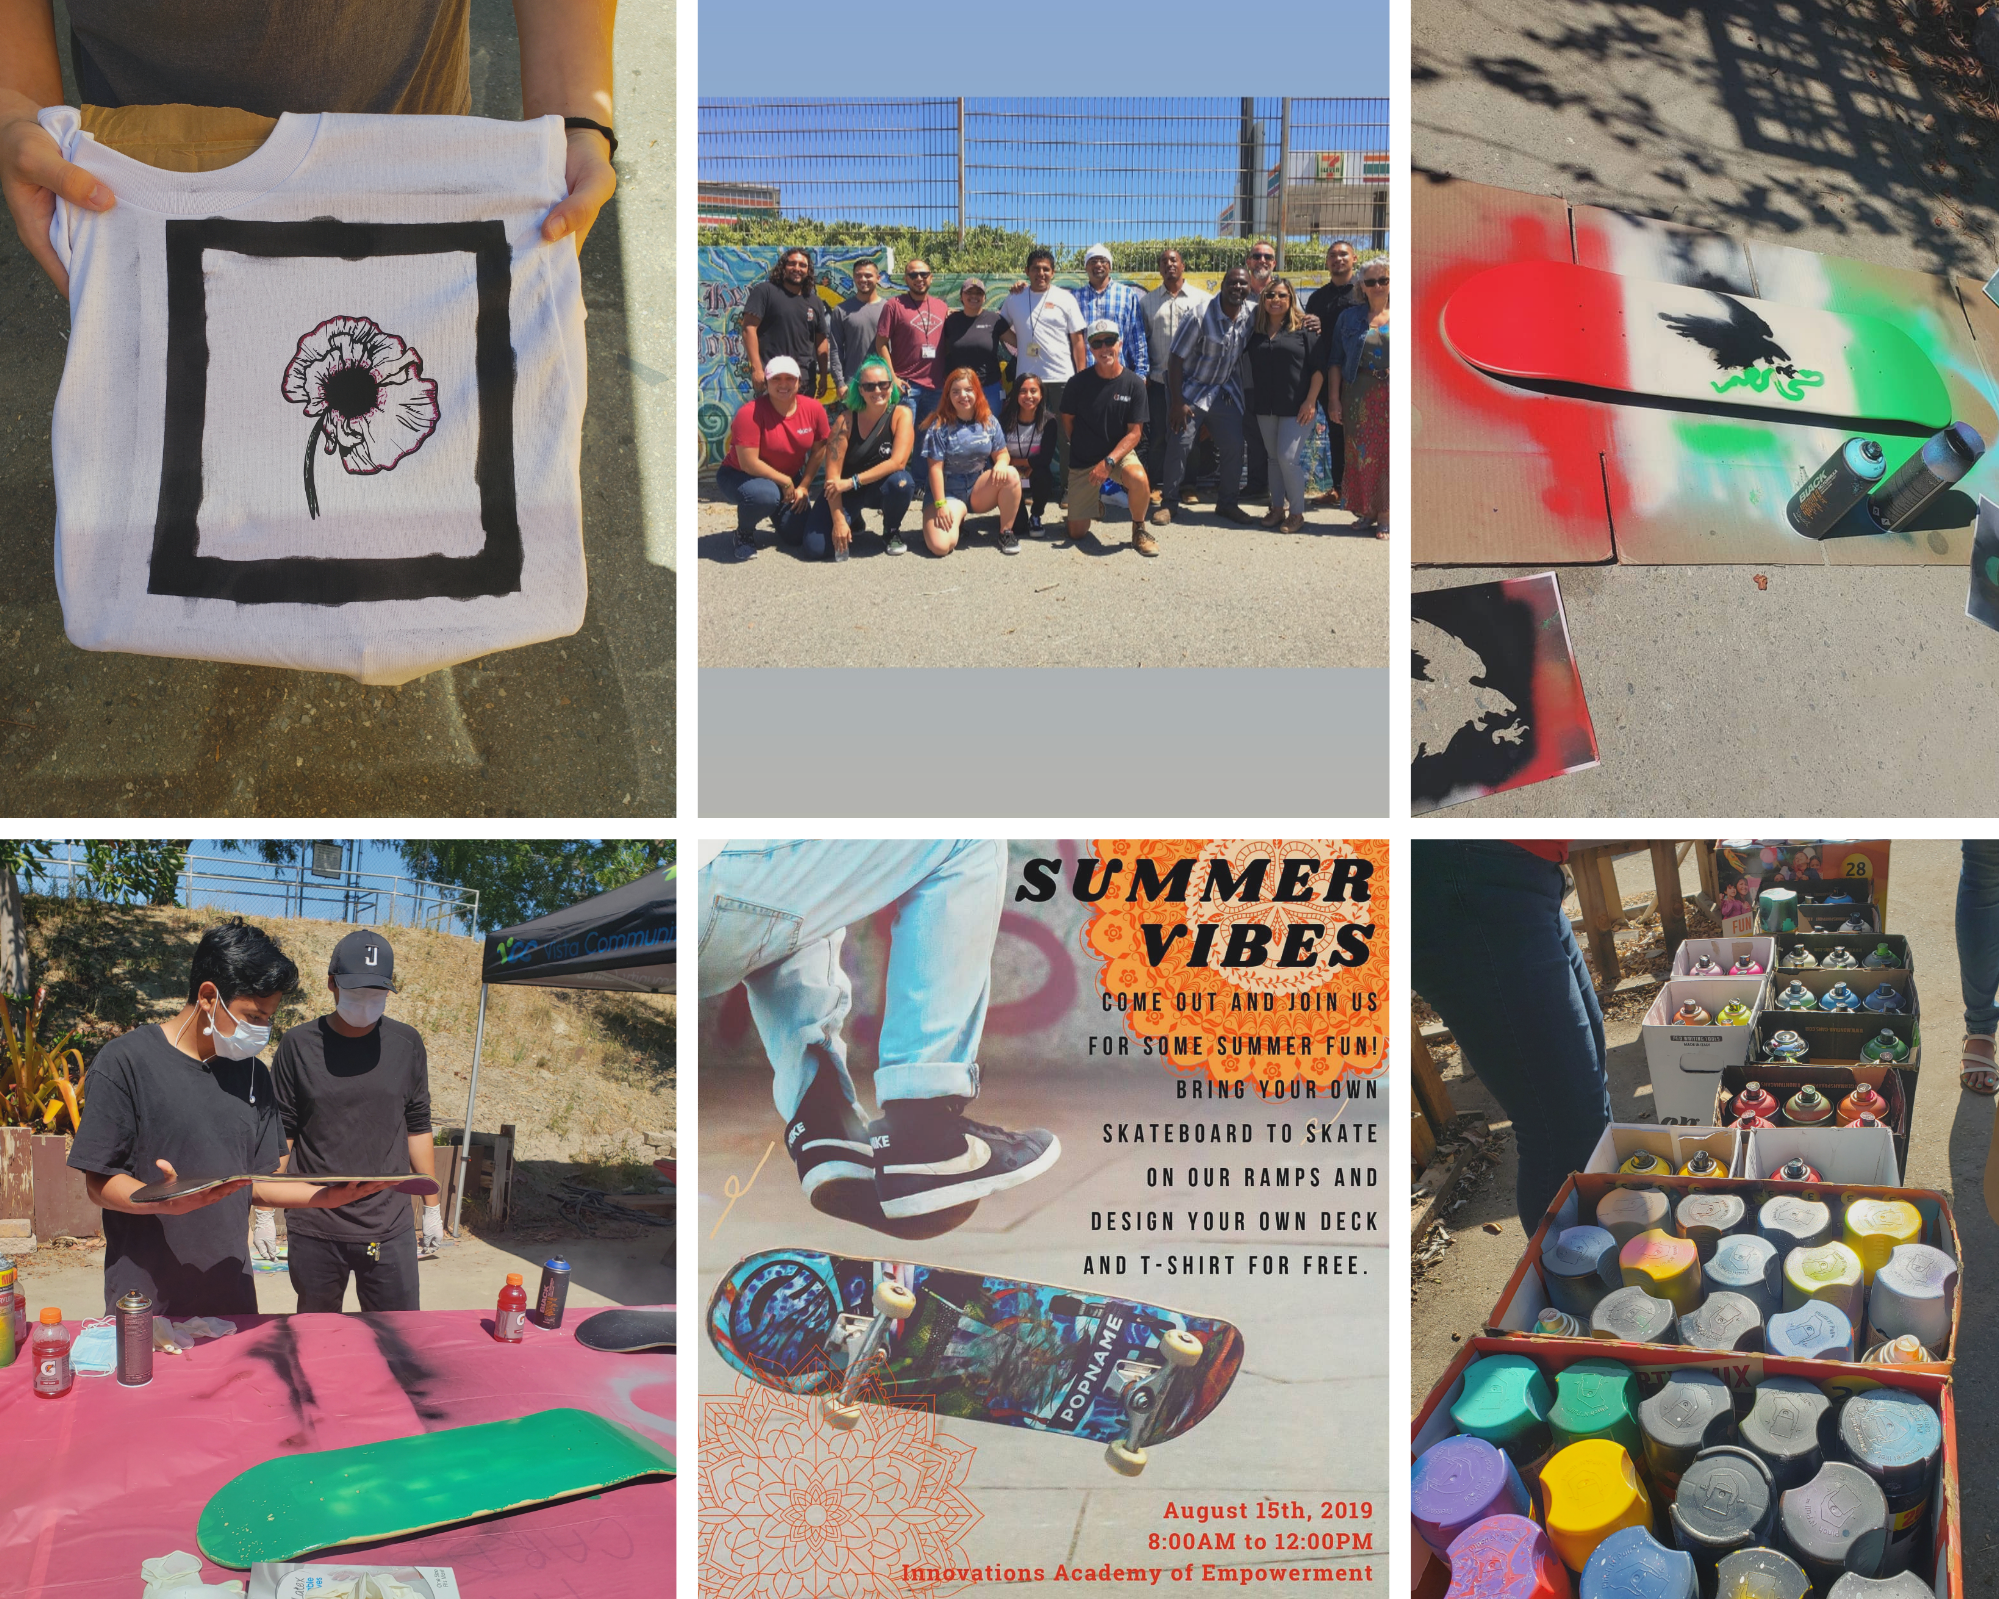 Summer Vibes - August 2019Community event with many community partners, including Vista Community Clinic. Kids designed their own skateboard deck and learned printing press basics with a T-shirt design studio. Love seeing art and skateboarding celebrated together!